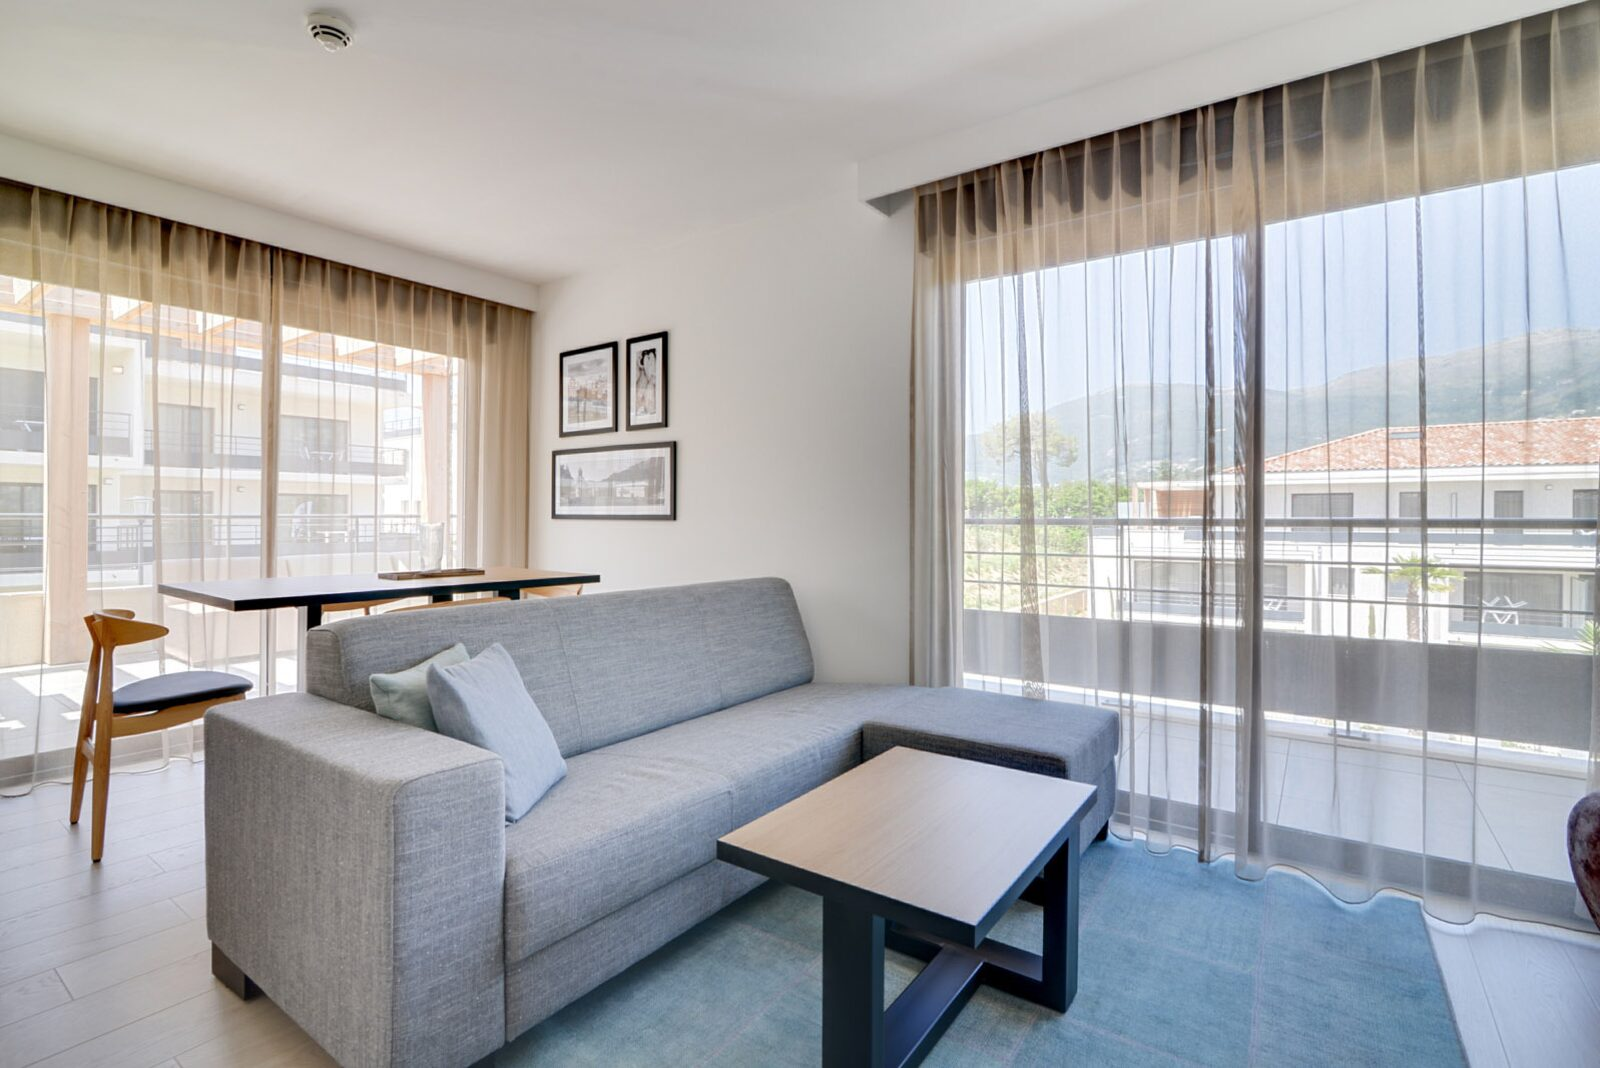 Penthouse premium for 4 people with 2 double beds